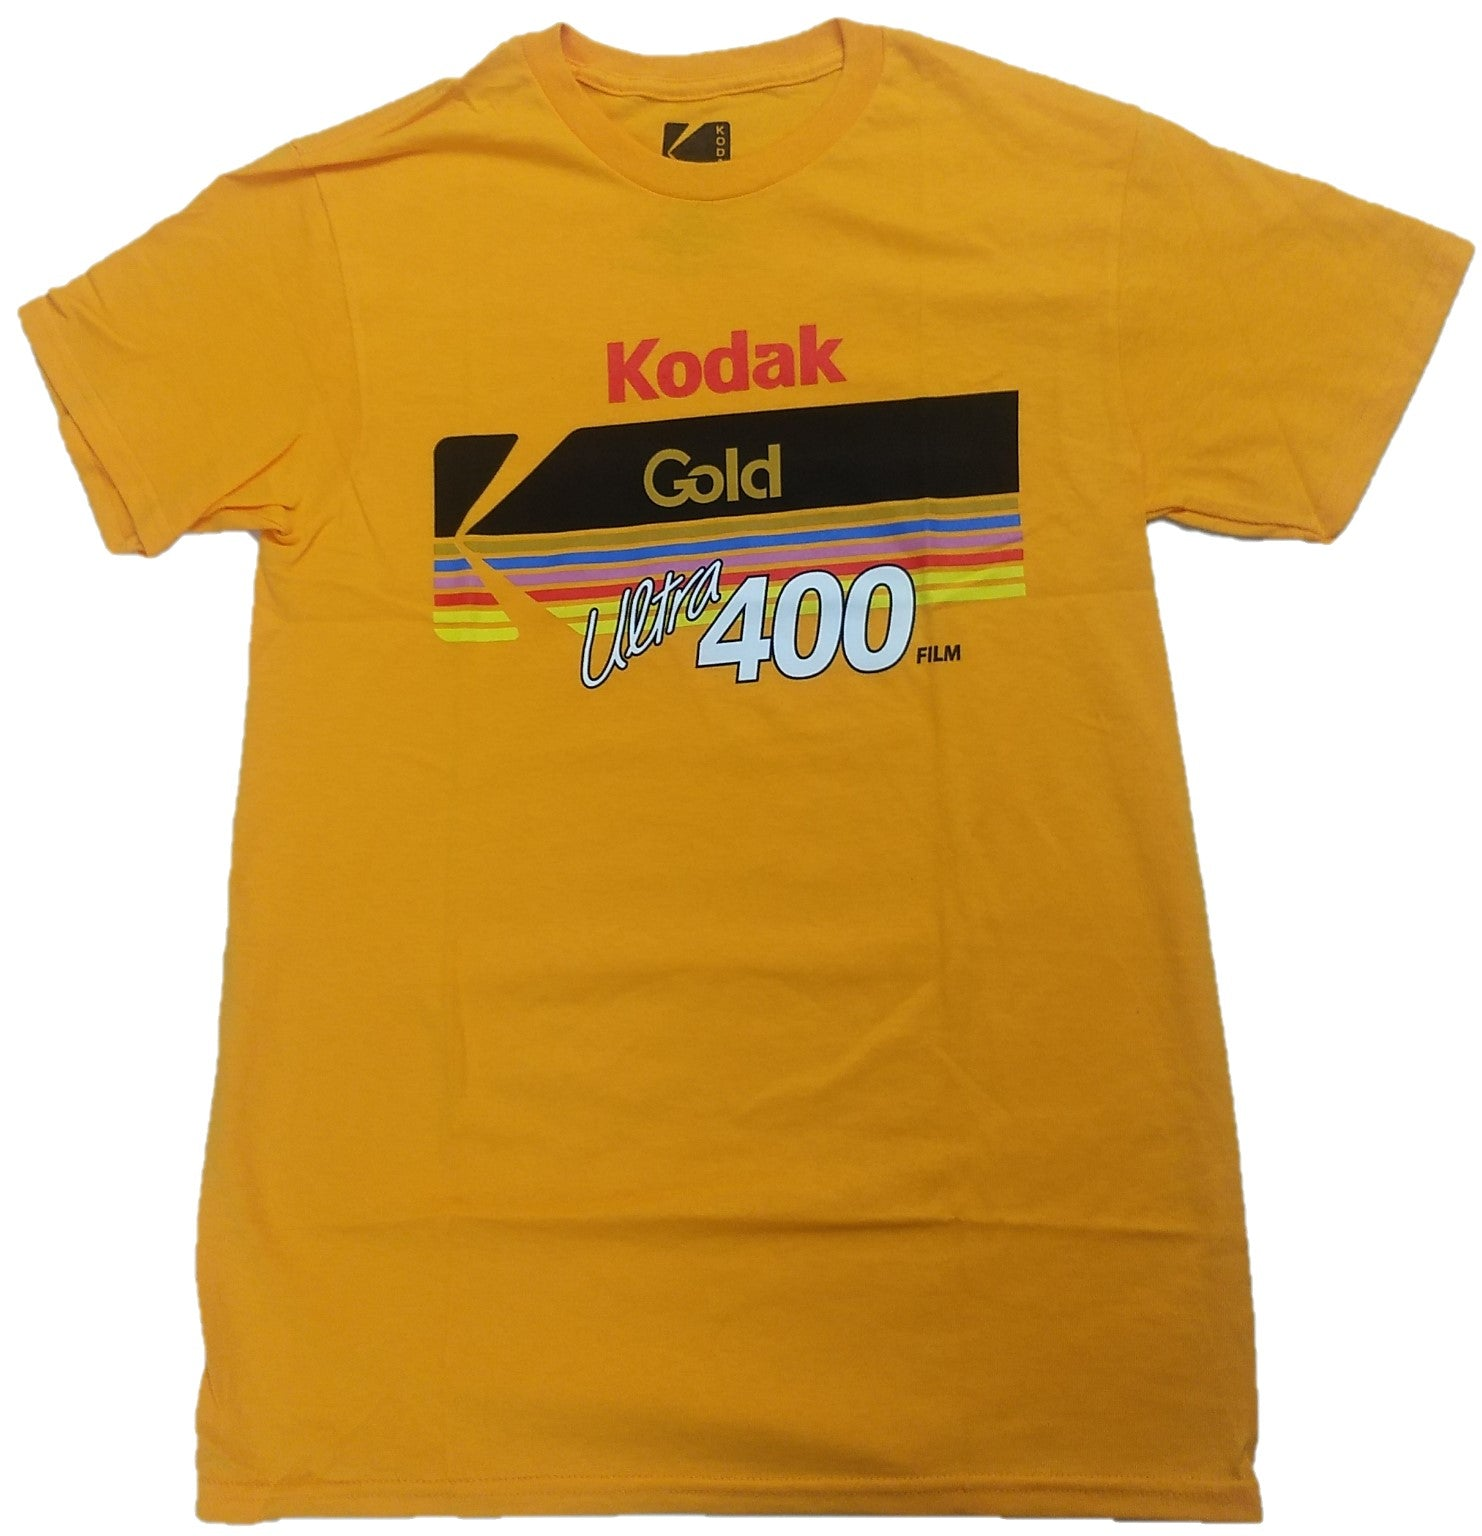 Kodak Camera Gold Ultra 400 Film Vintage Mens T-Shirt (Yellow)